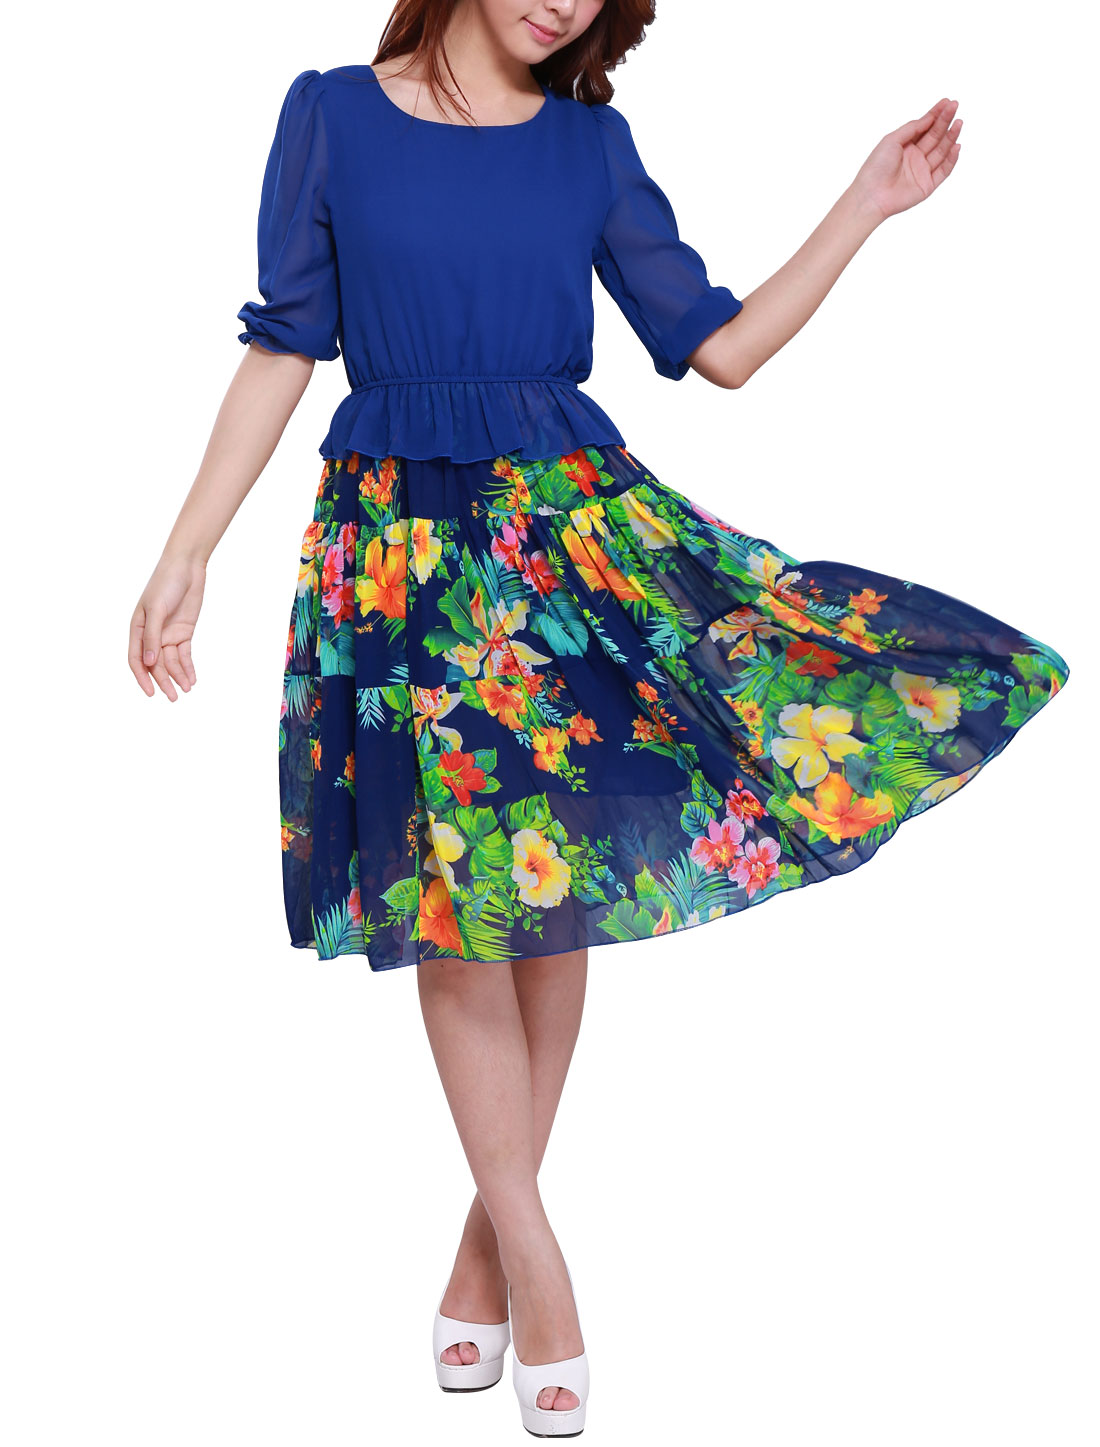 Lady 3/4 Sleeve Elastic Waist Floral Prints NEW Dress Royal Blue XS